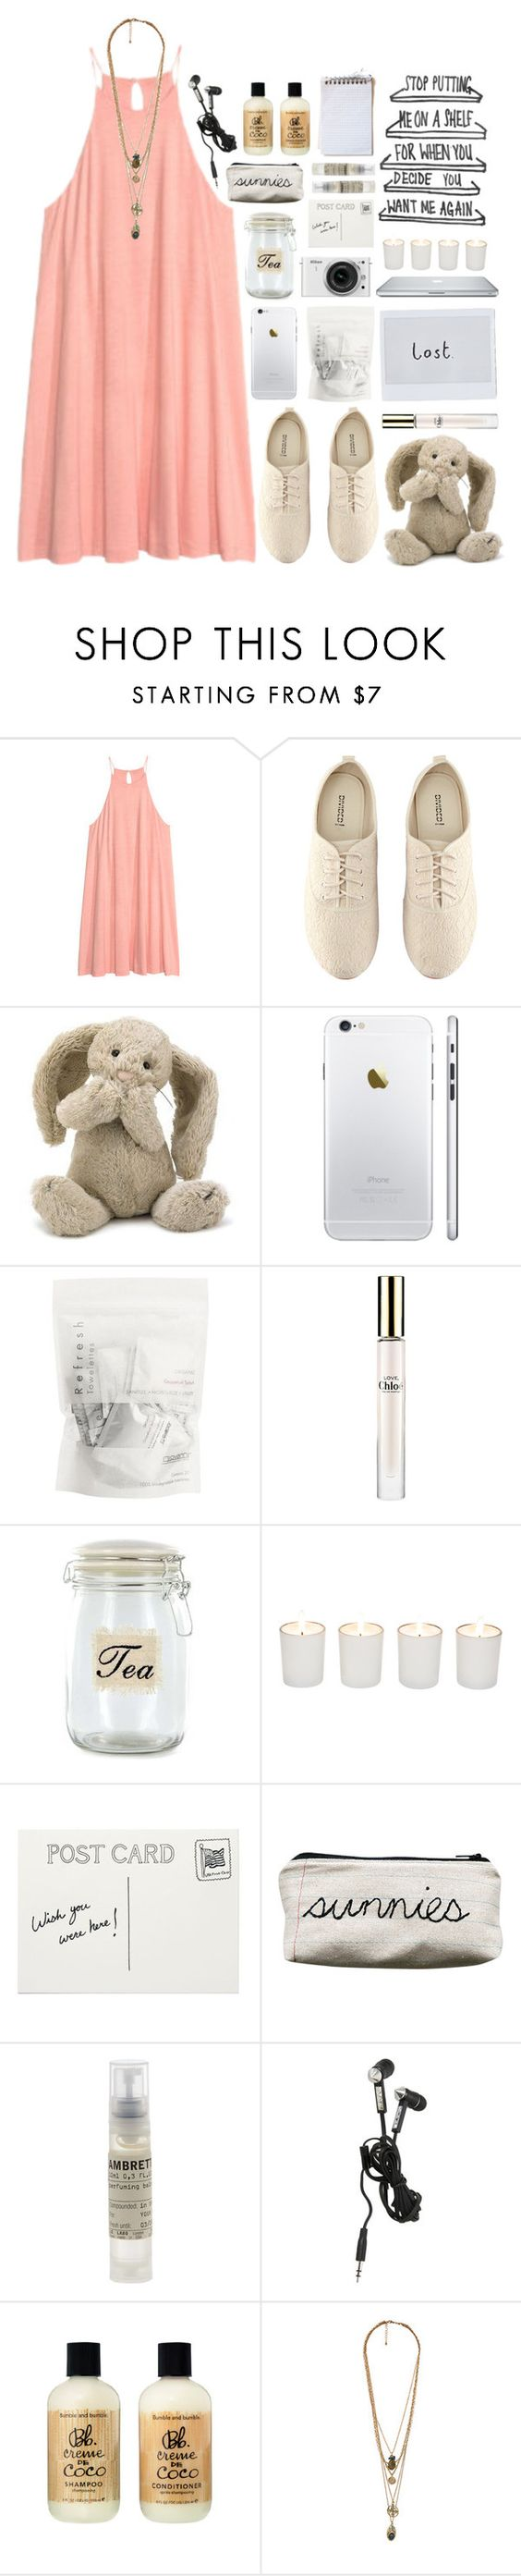 """""""Don't Push Your Luck"""" by blurry-constellations-xx ❤ liked on Polyvore featuring H&M, Jellycat, Chloé, Nikon, Witchery, Club Monaco, Citizens of Humanity, Le Labo and Forever 21"""